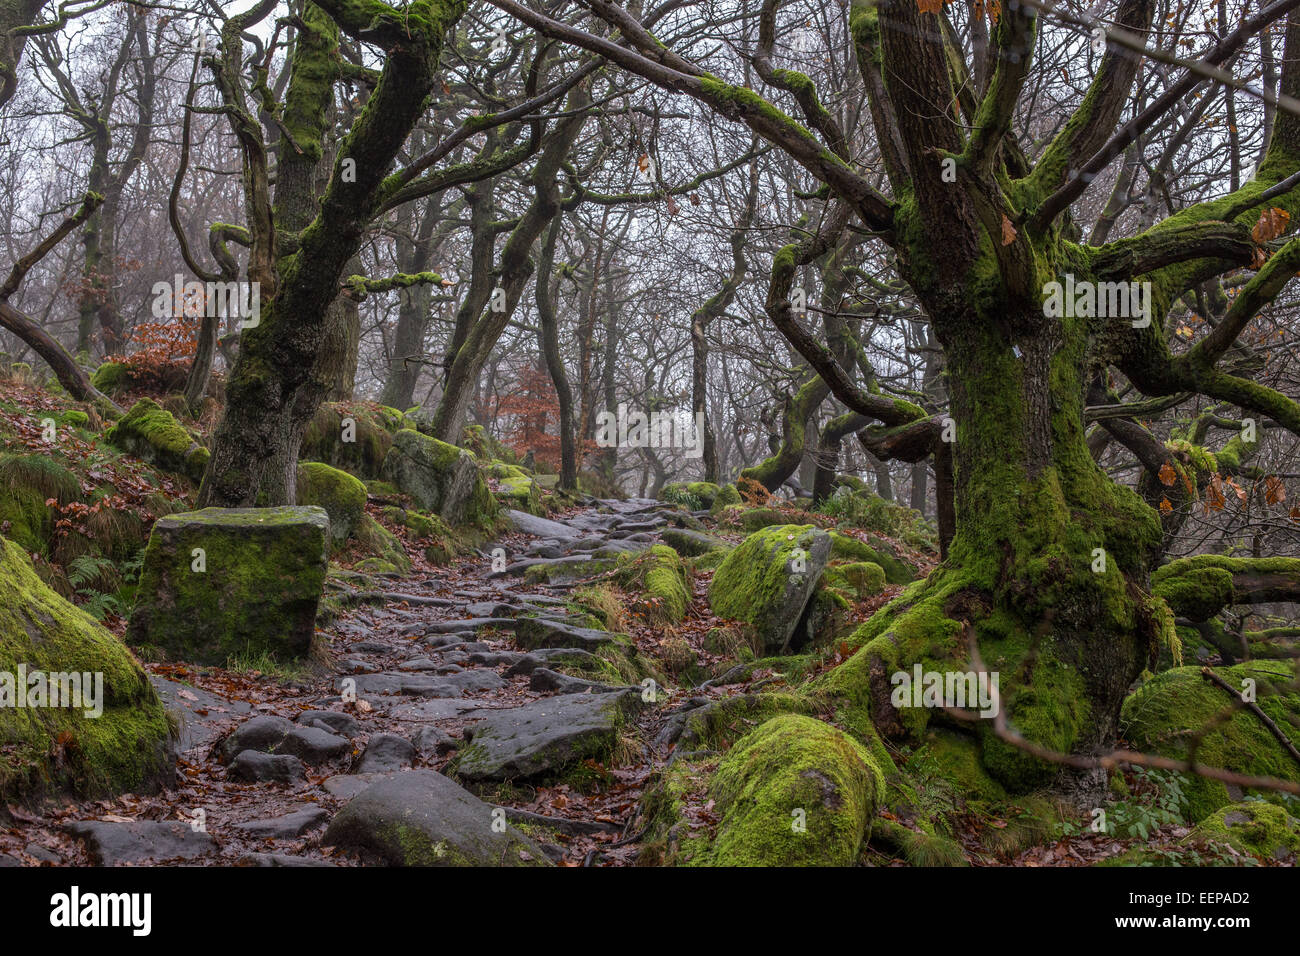 Padley Gorge, Winters Walk - Green Trees and Rocky Path - Stock Image